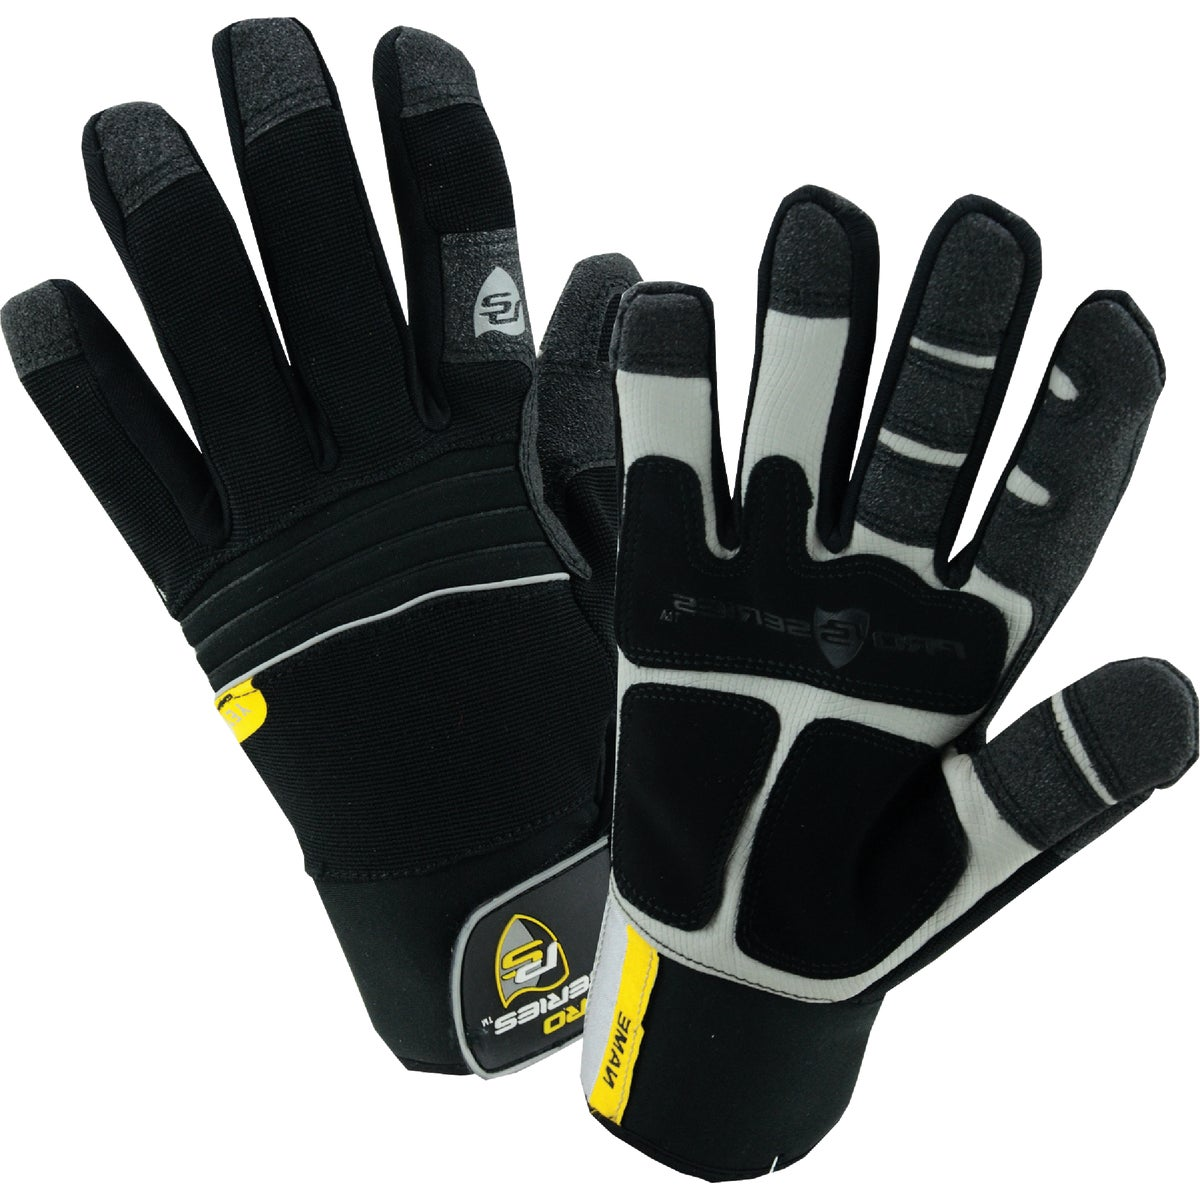 LRG COLD WEATHER GLOVE - CCG-04-L by Ironclad Performance